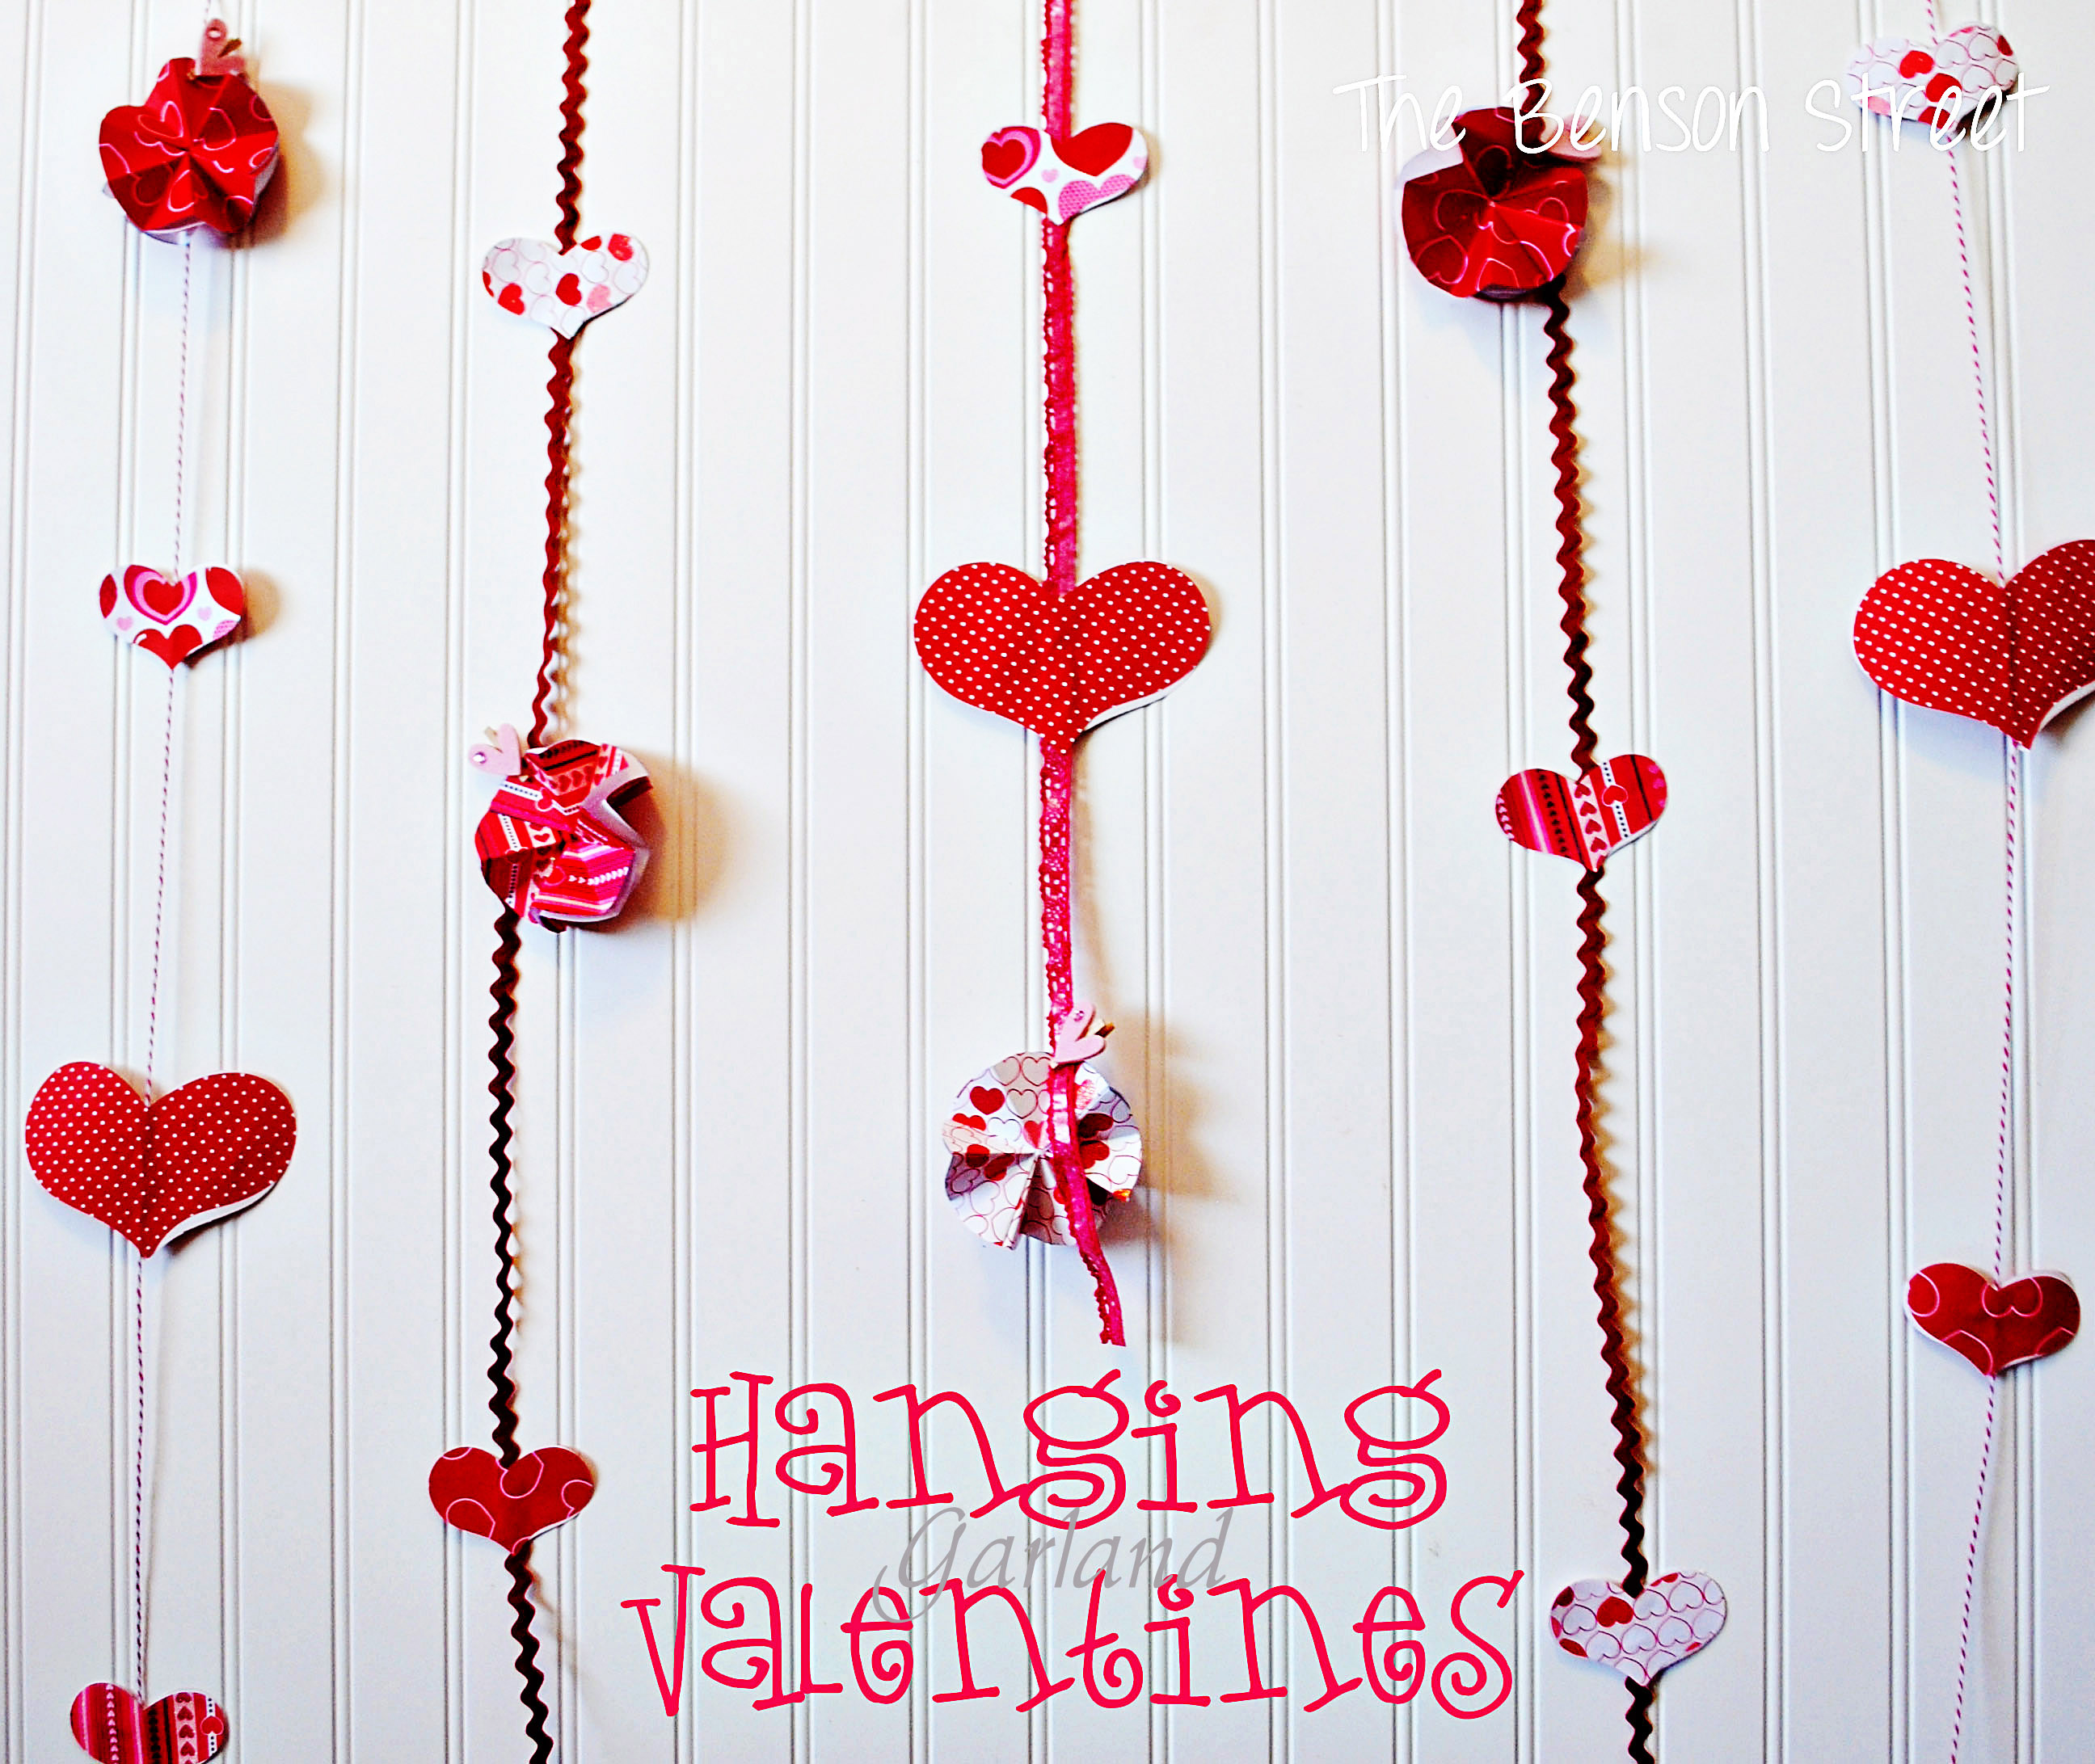 Charming Home Decor Archives | The Benson StreetThe Benson Street Valentine Home  Decor Ideas